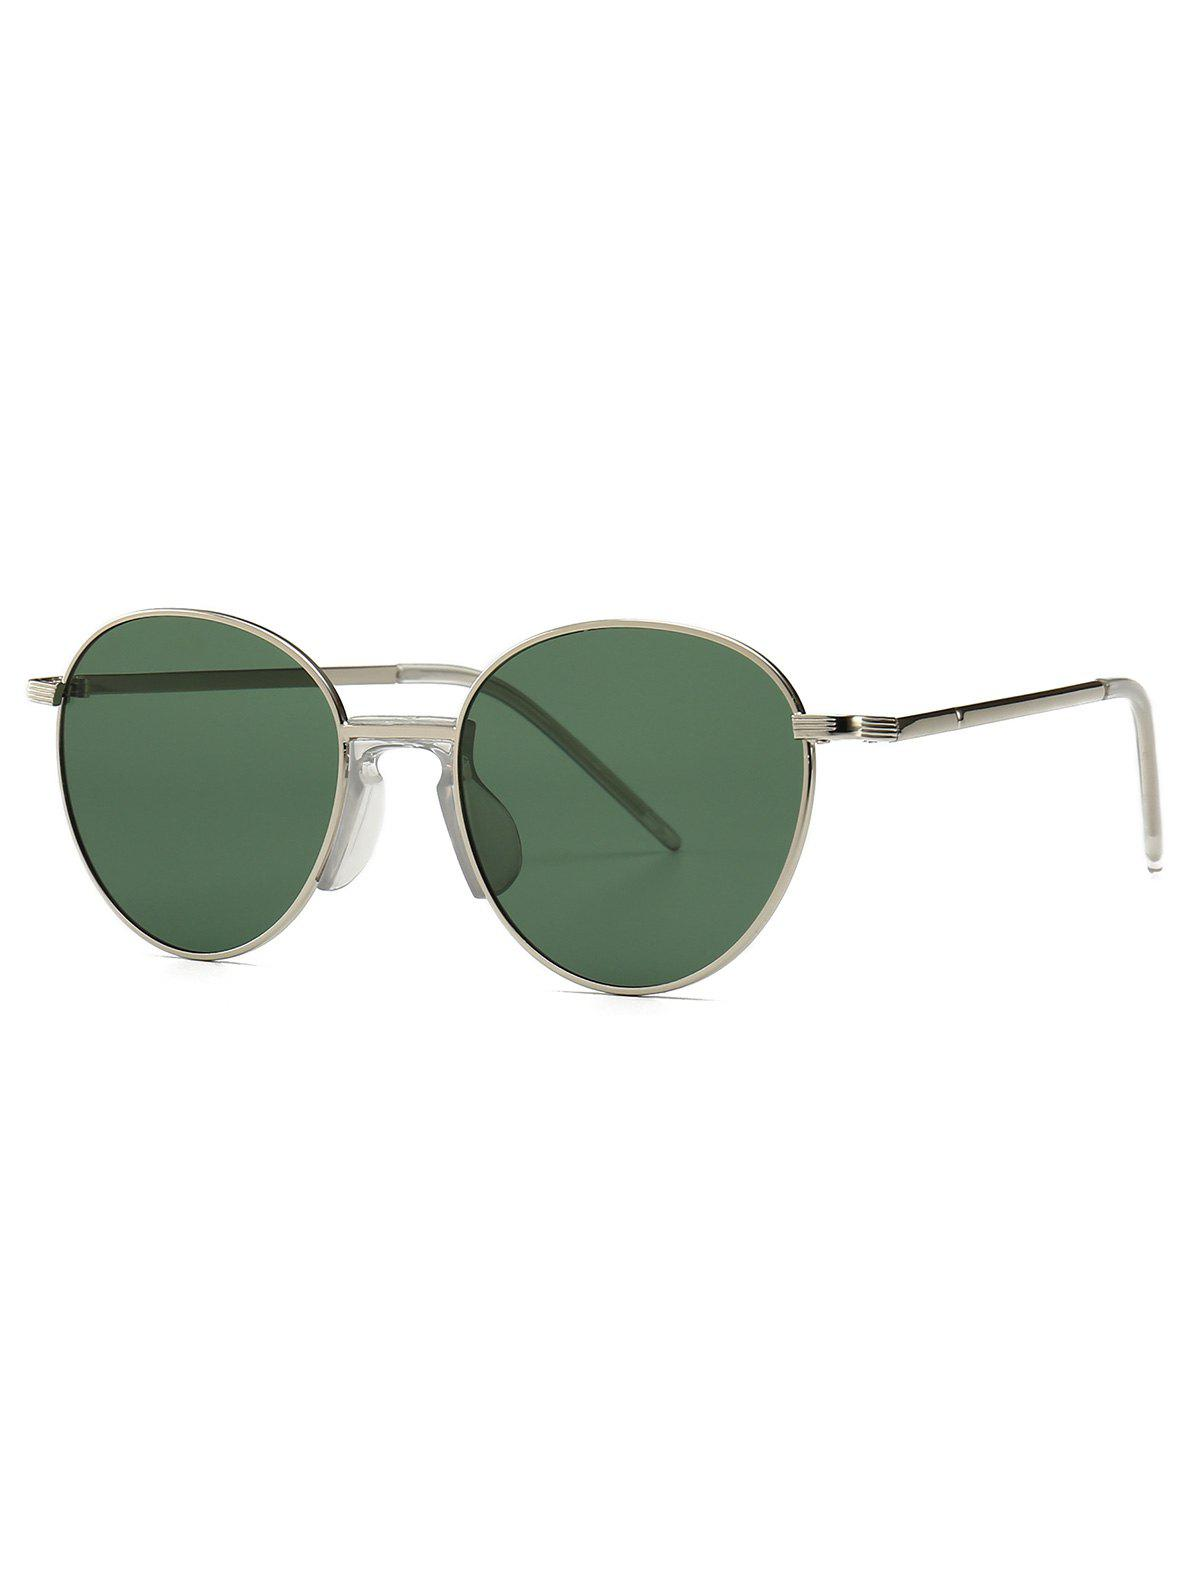 Buy Metal Vintage Round Sunglasses